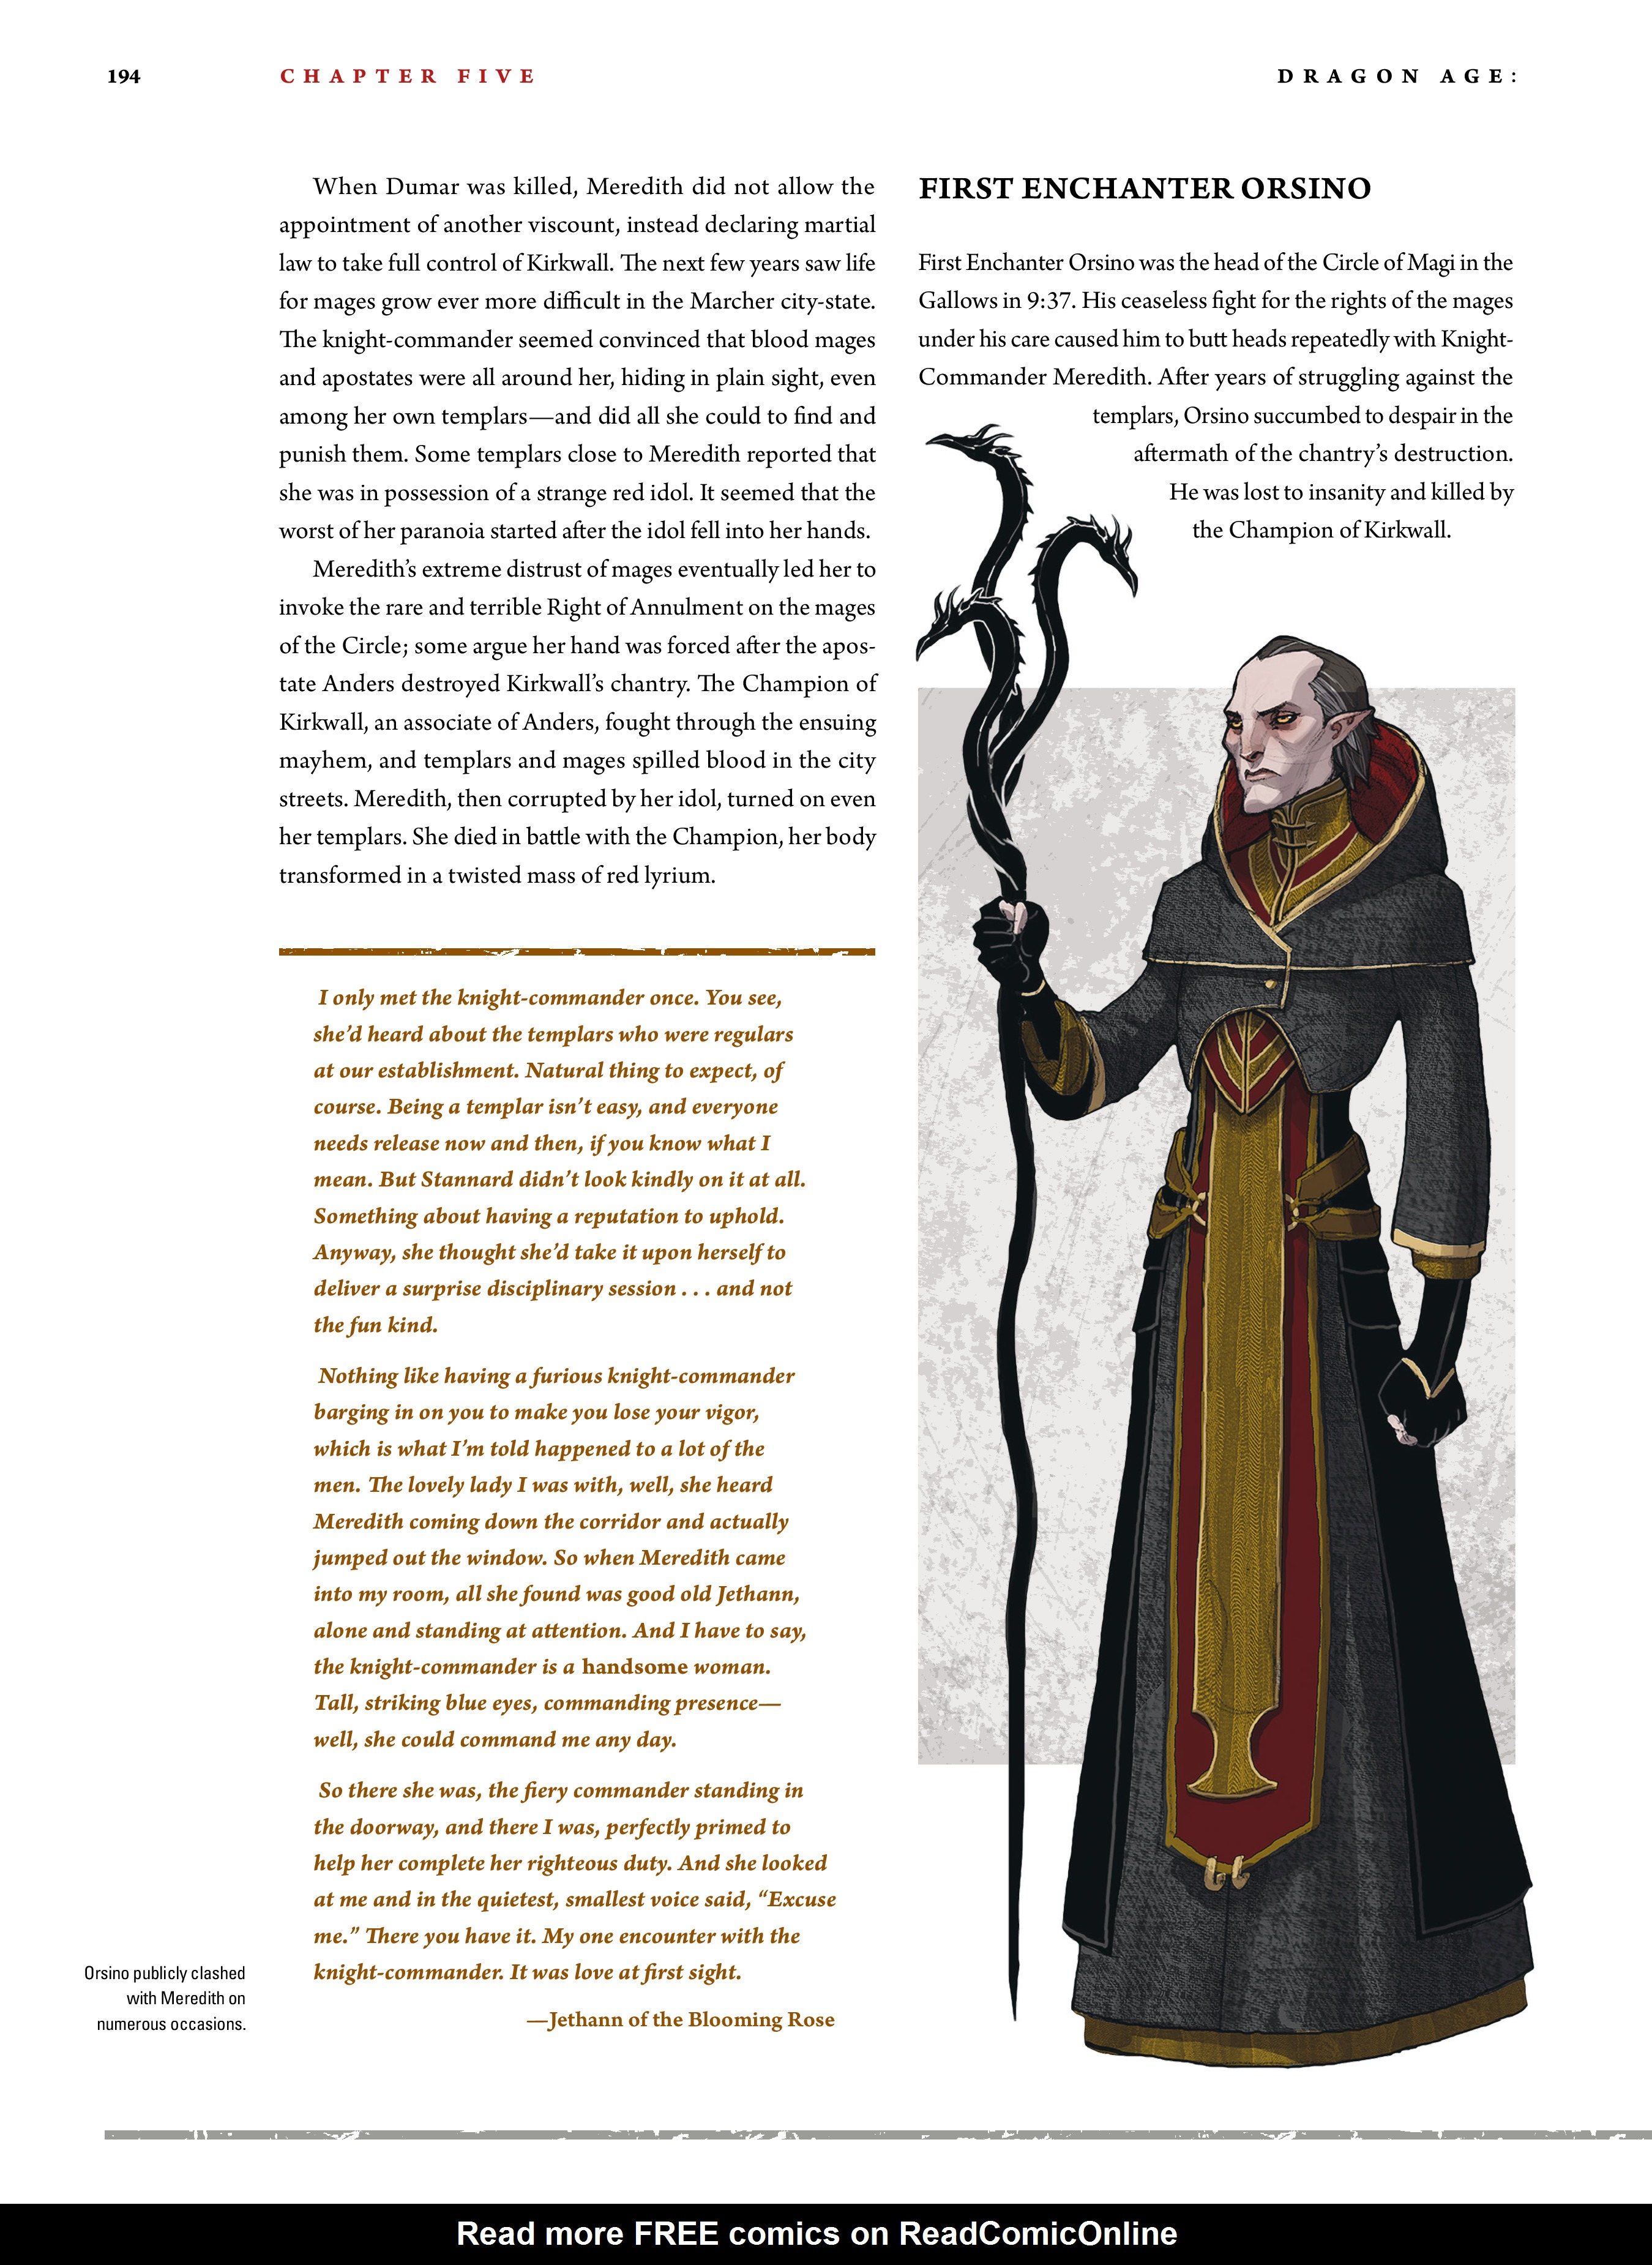 Read online Dragon Age: The World of Thedas comic -  Issue # TPB 2 - 189